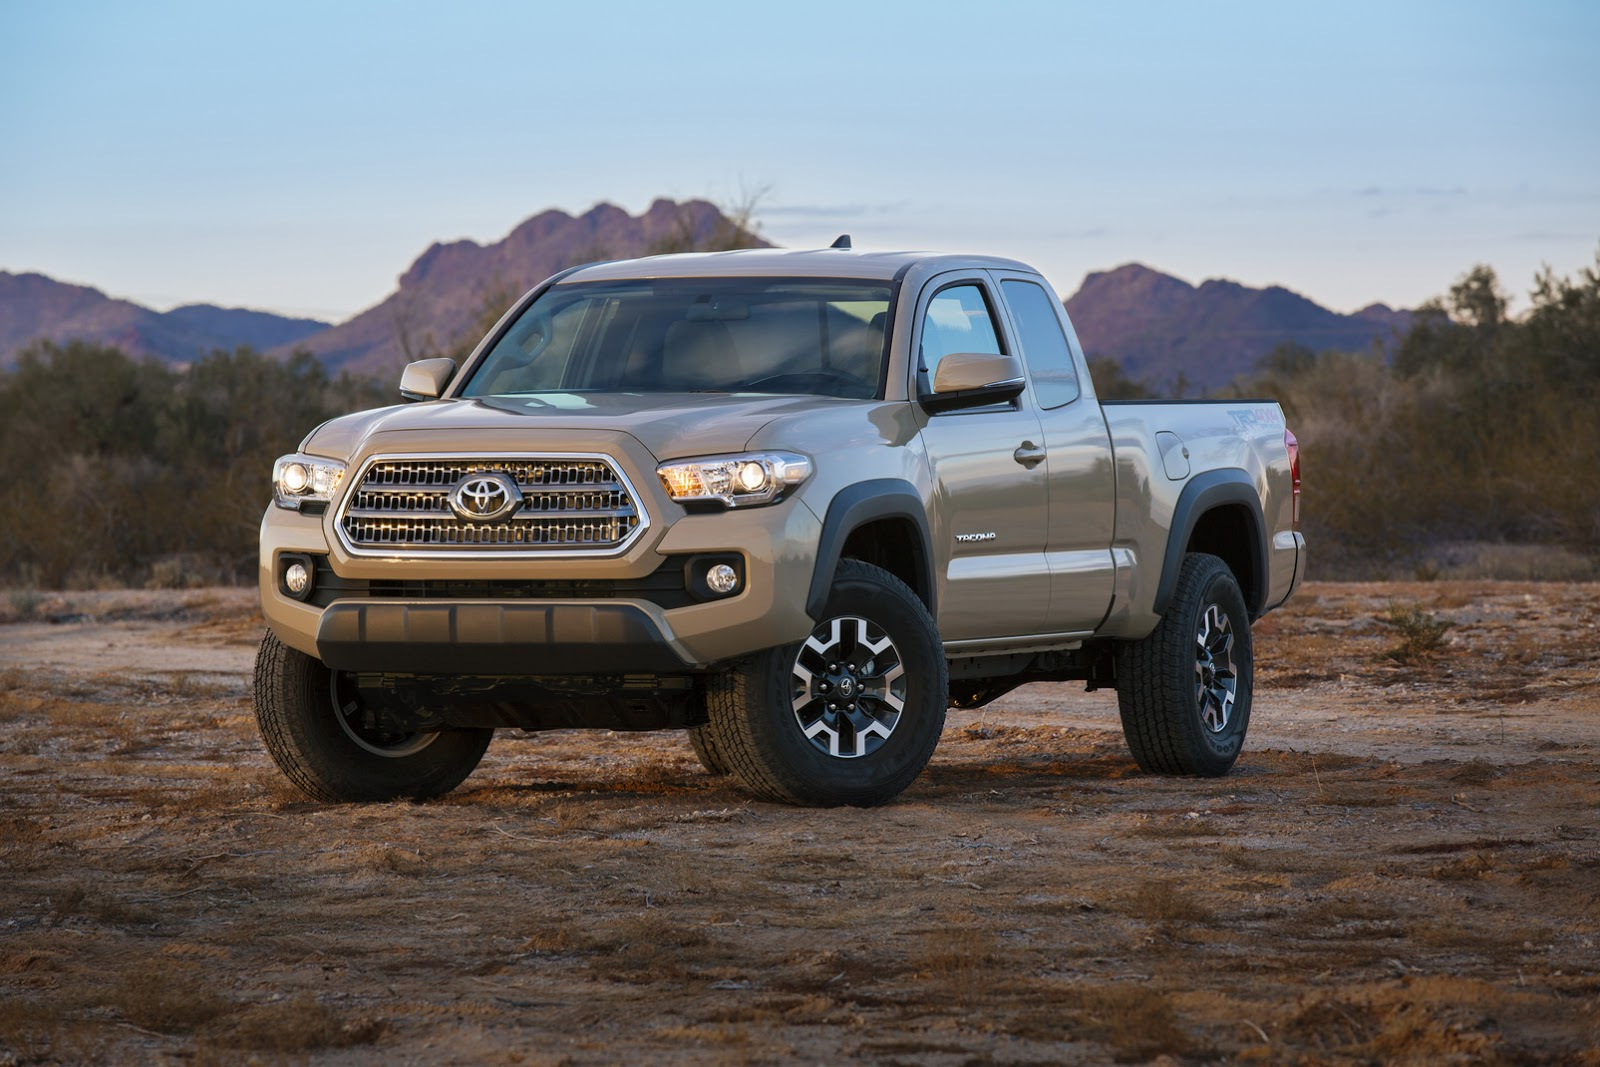 toyota details new 2016 tacoma pickup truck 75 pics video carscoops. Black Bedroom Furniture Sets. Home Design Ideas